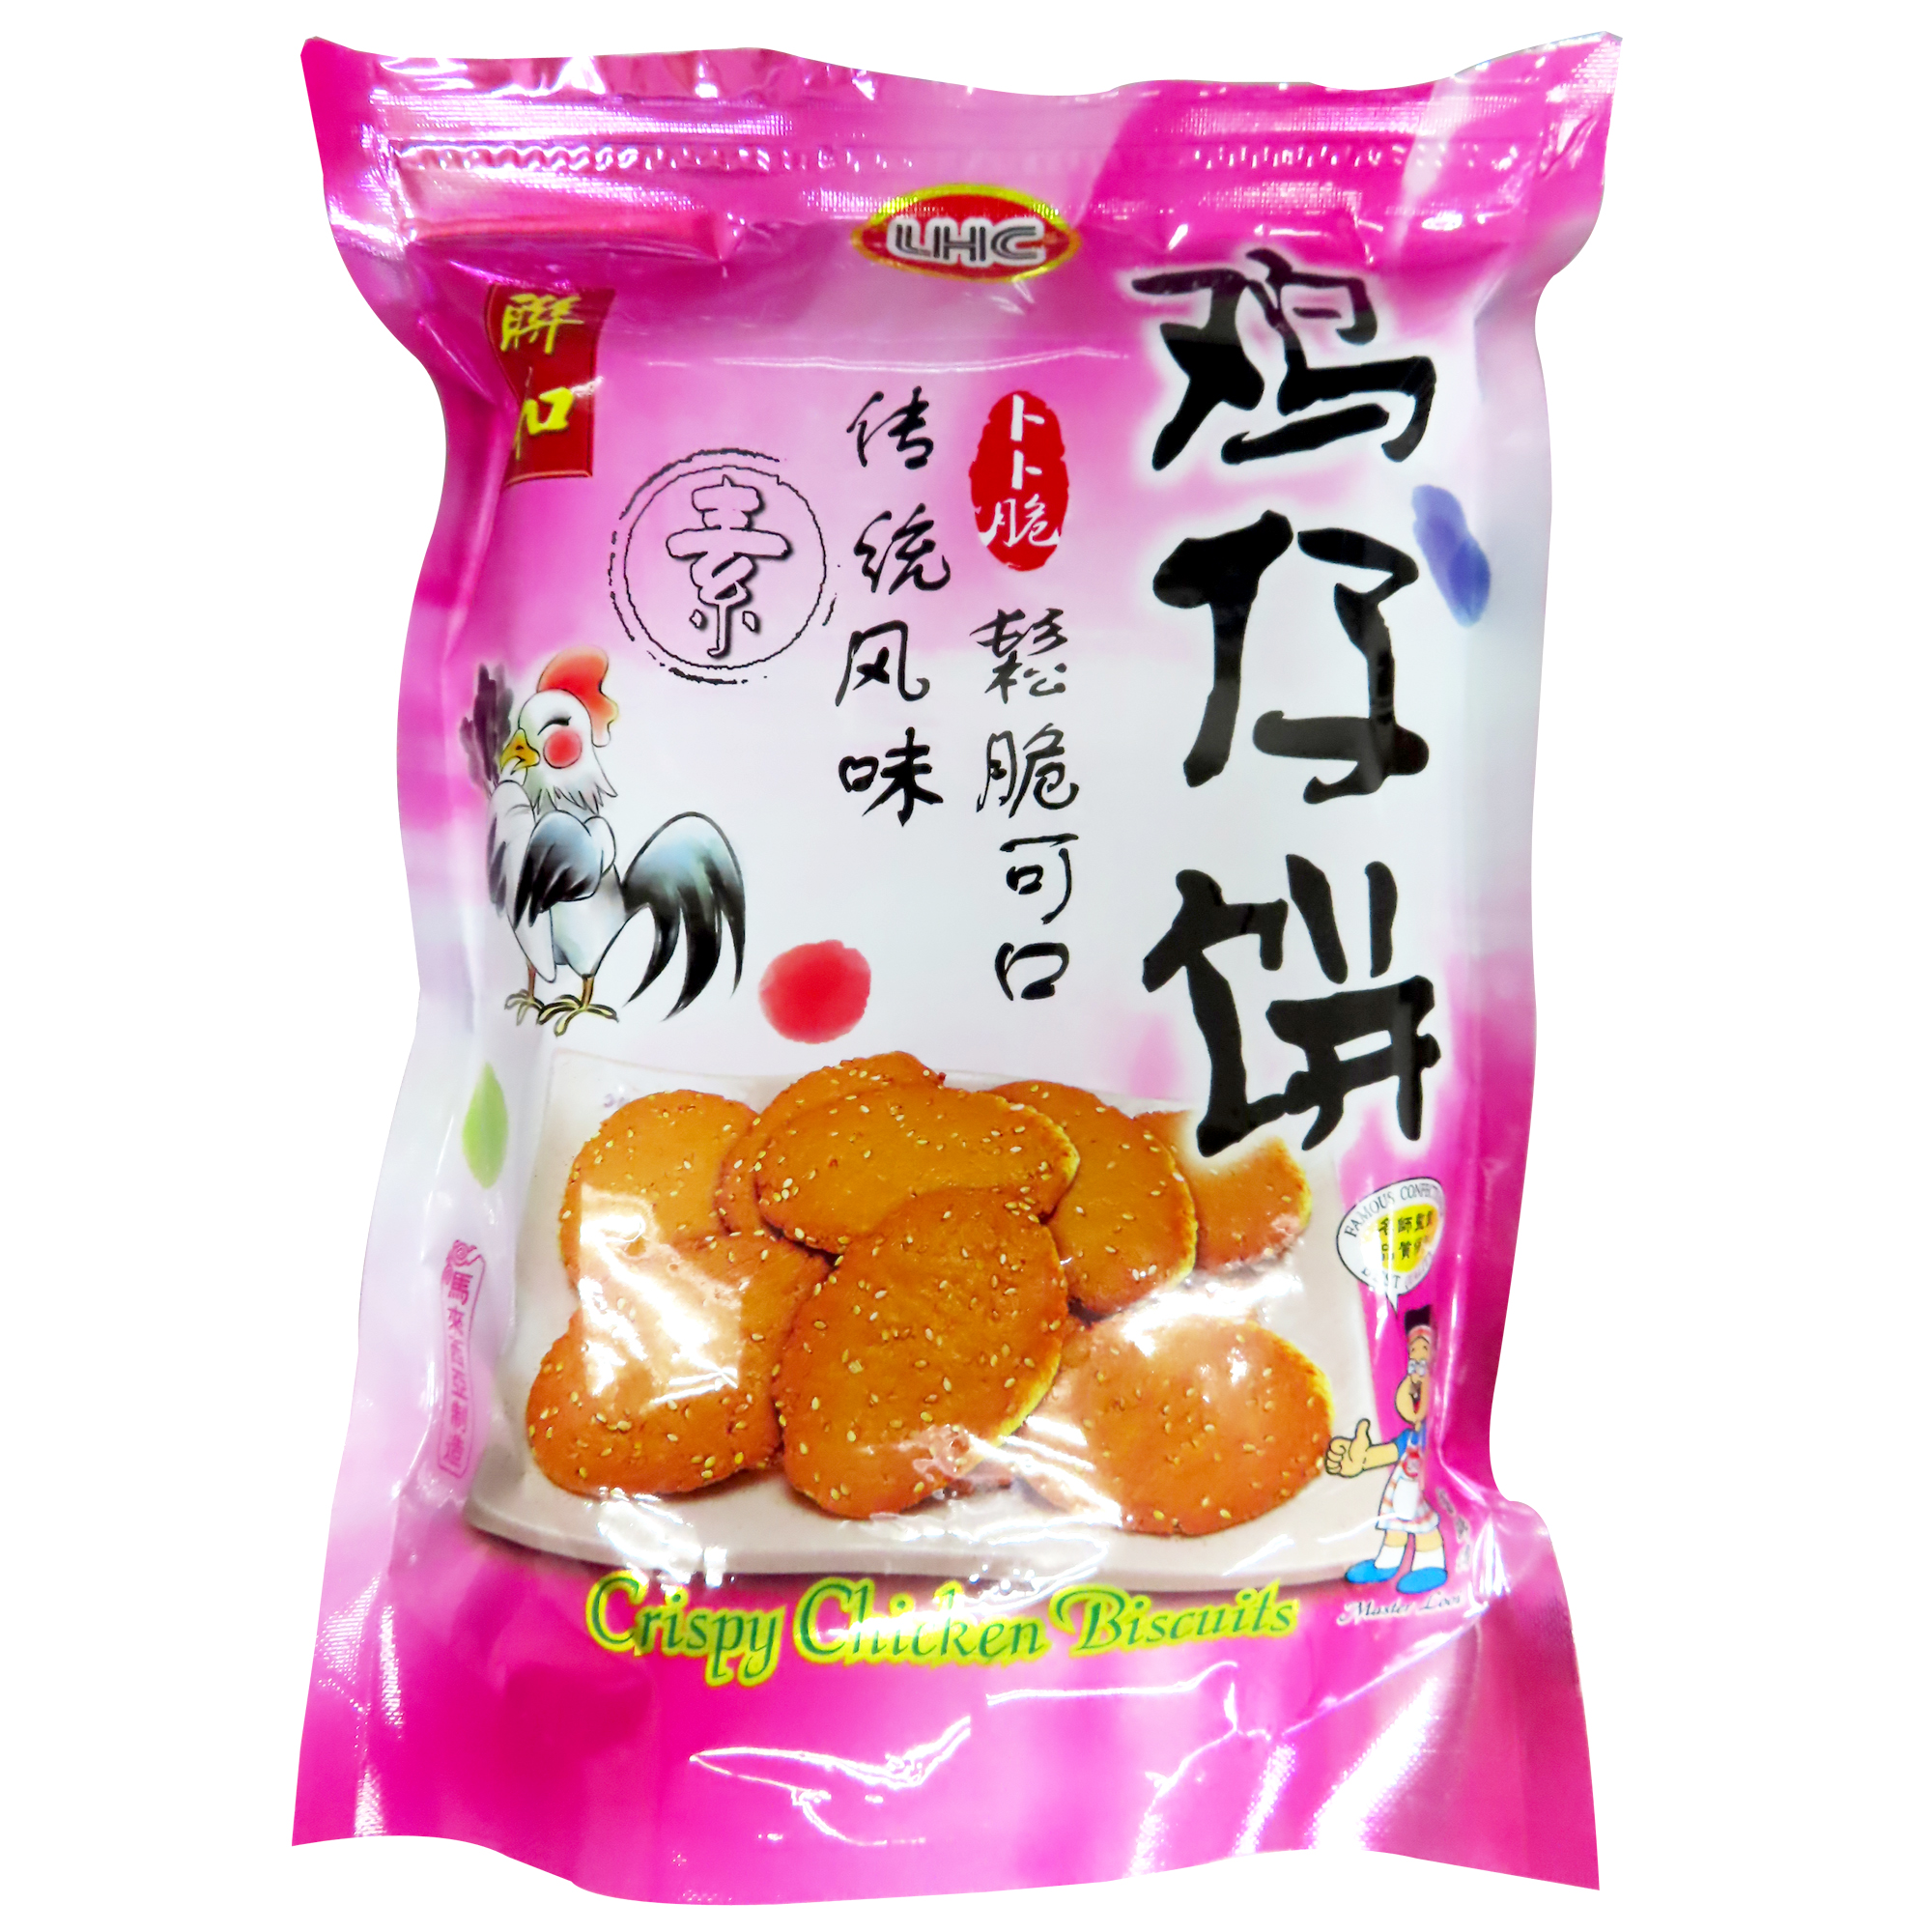 Image Crispy Chicken Biscuits 鸡仔饼 60grams